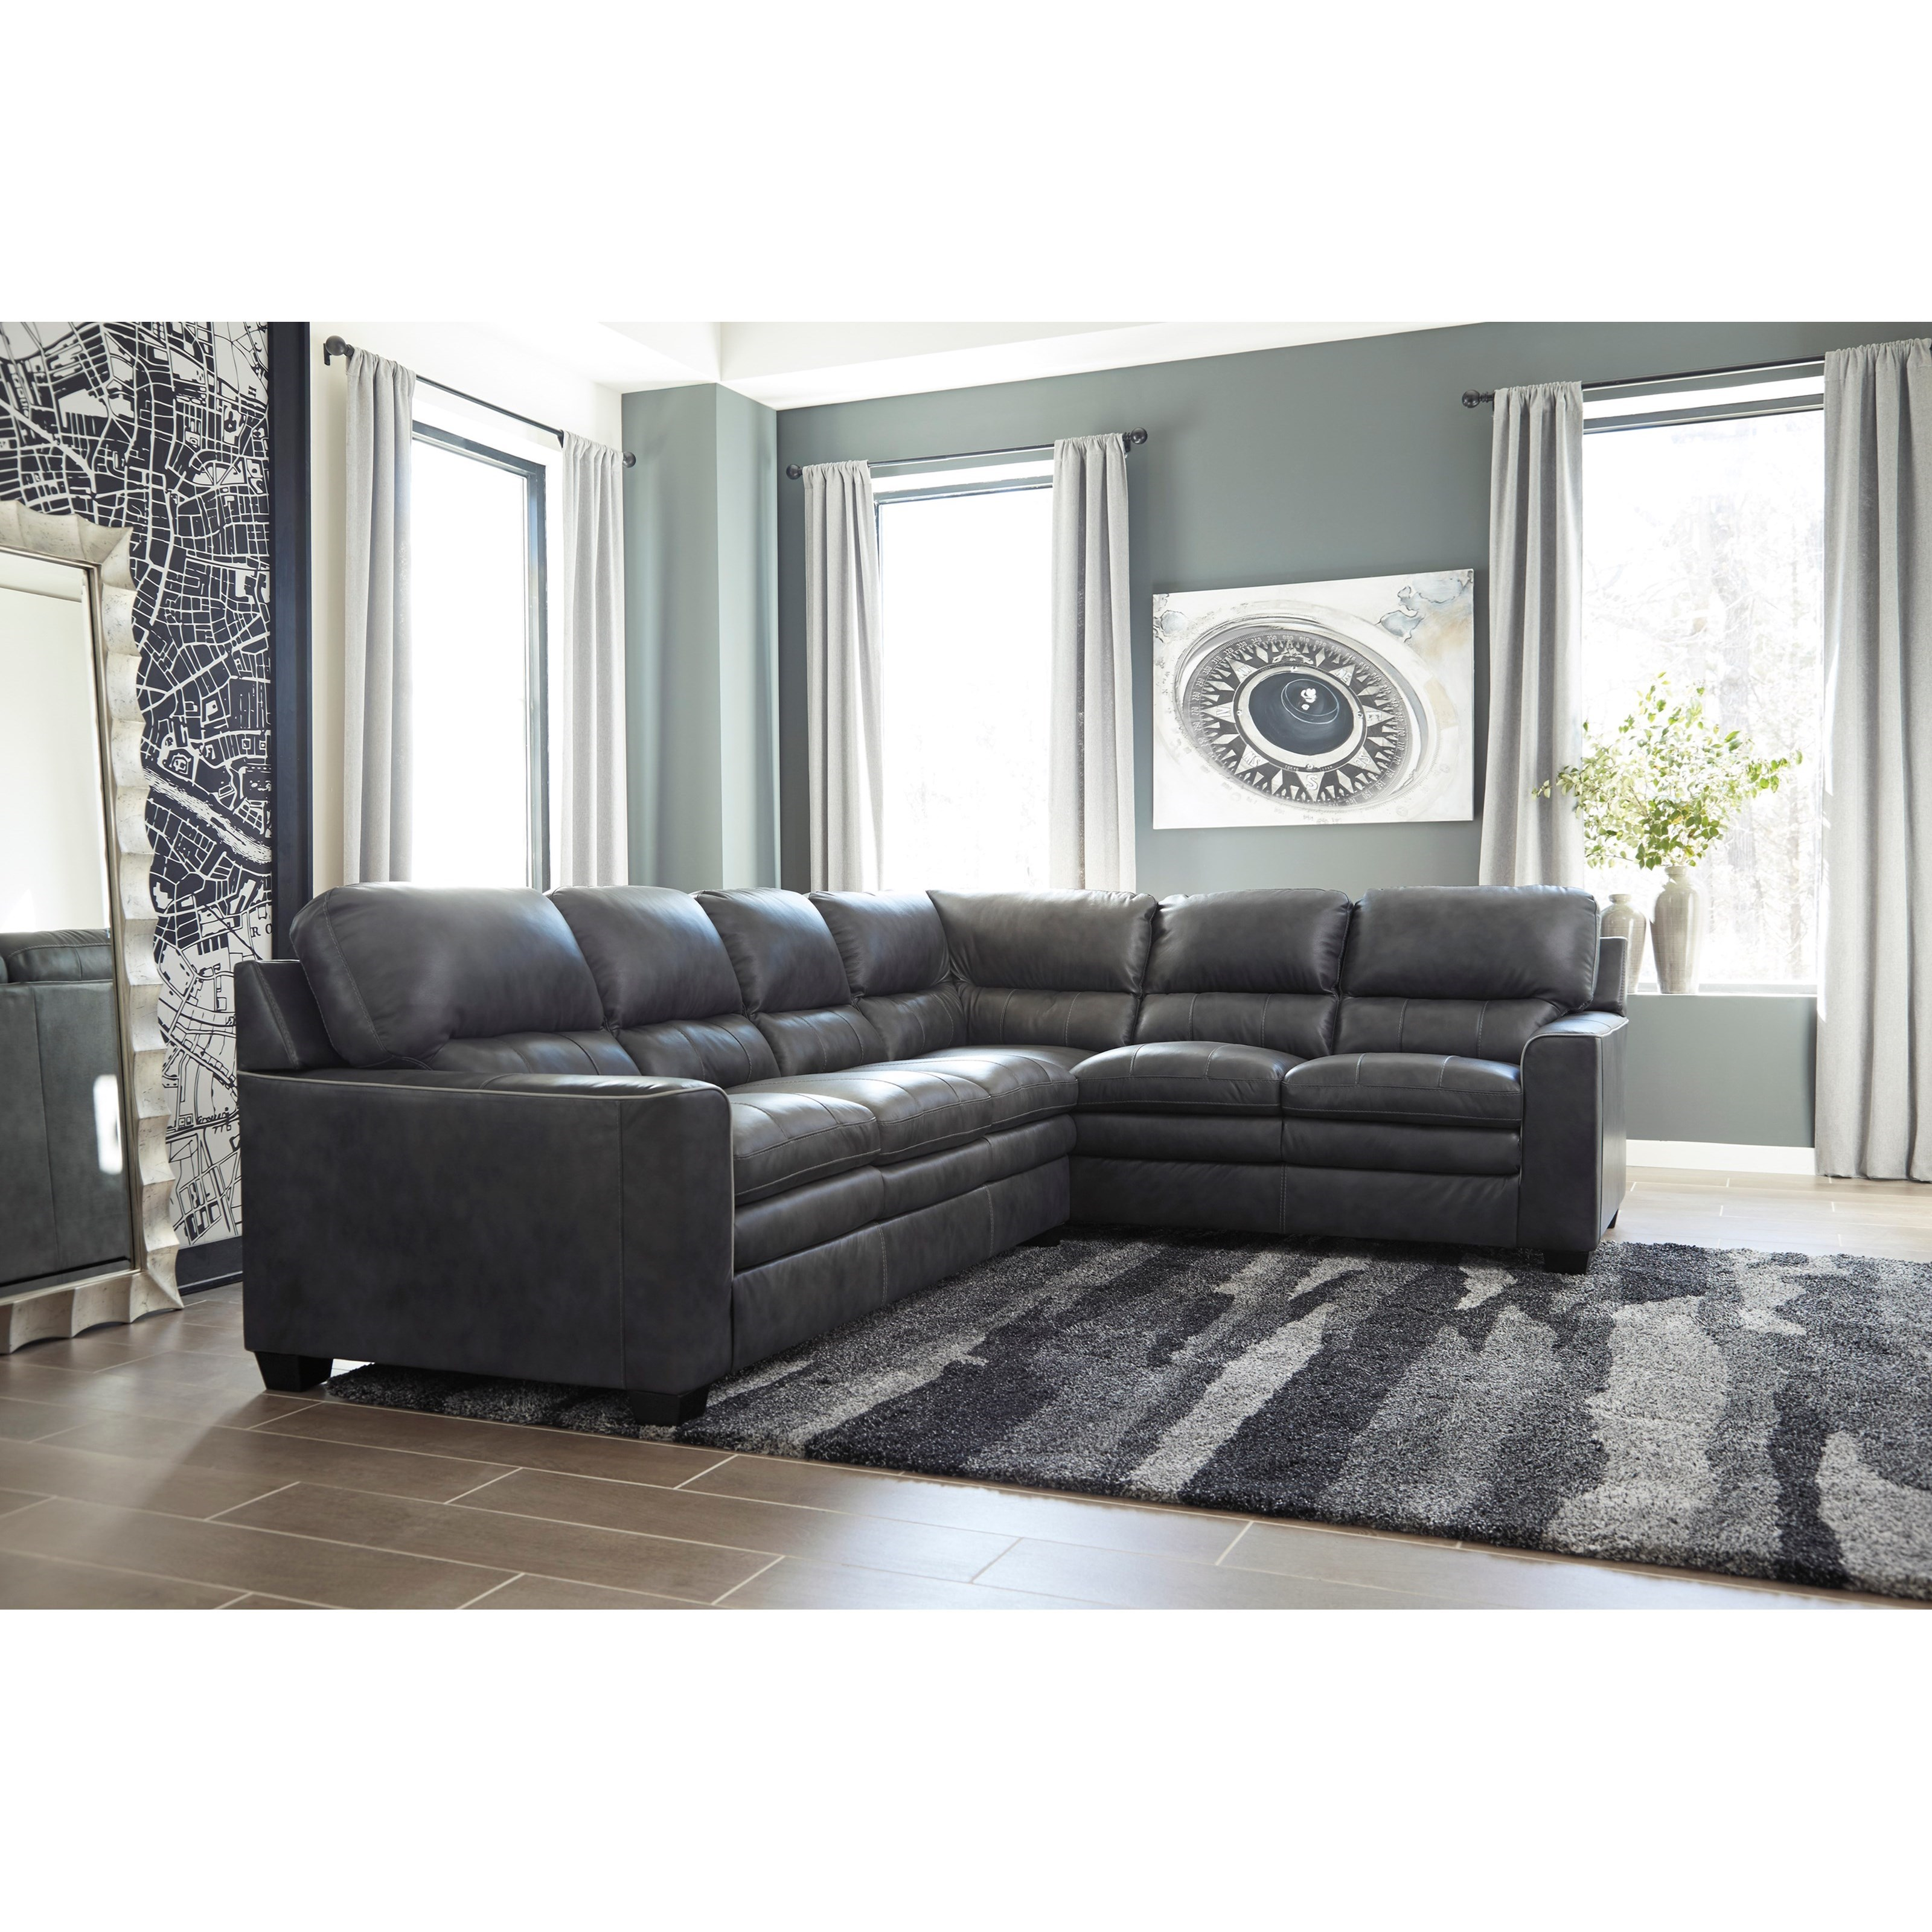 Signature Design By Ashley Gleason Leather Match L Shape Sectional Dream Home Furniture